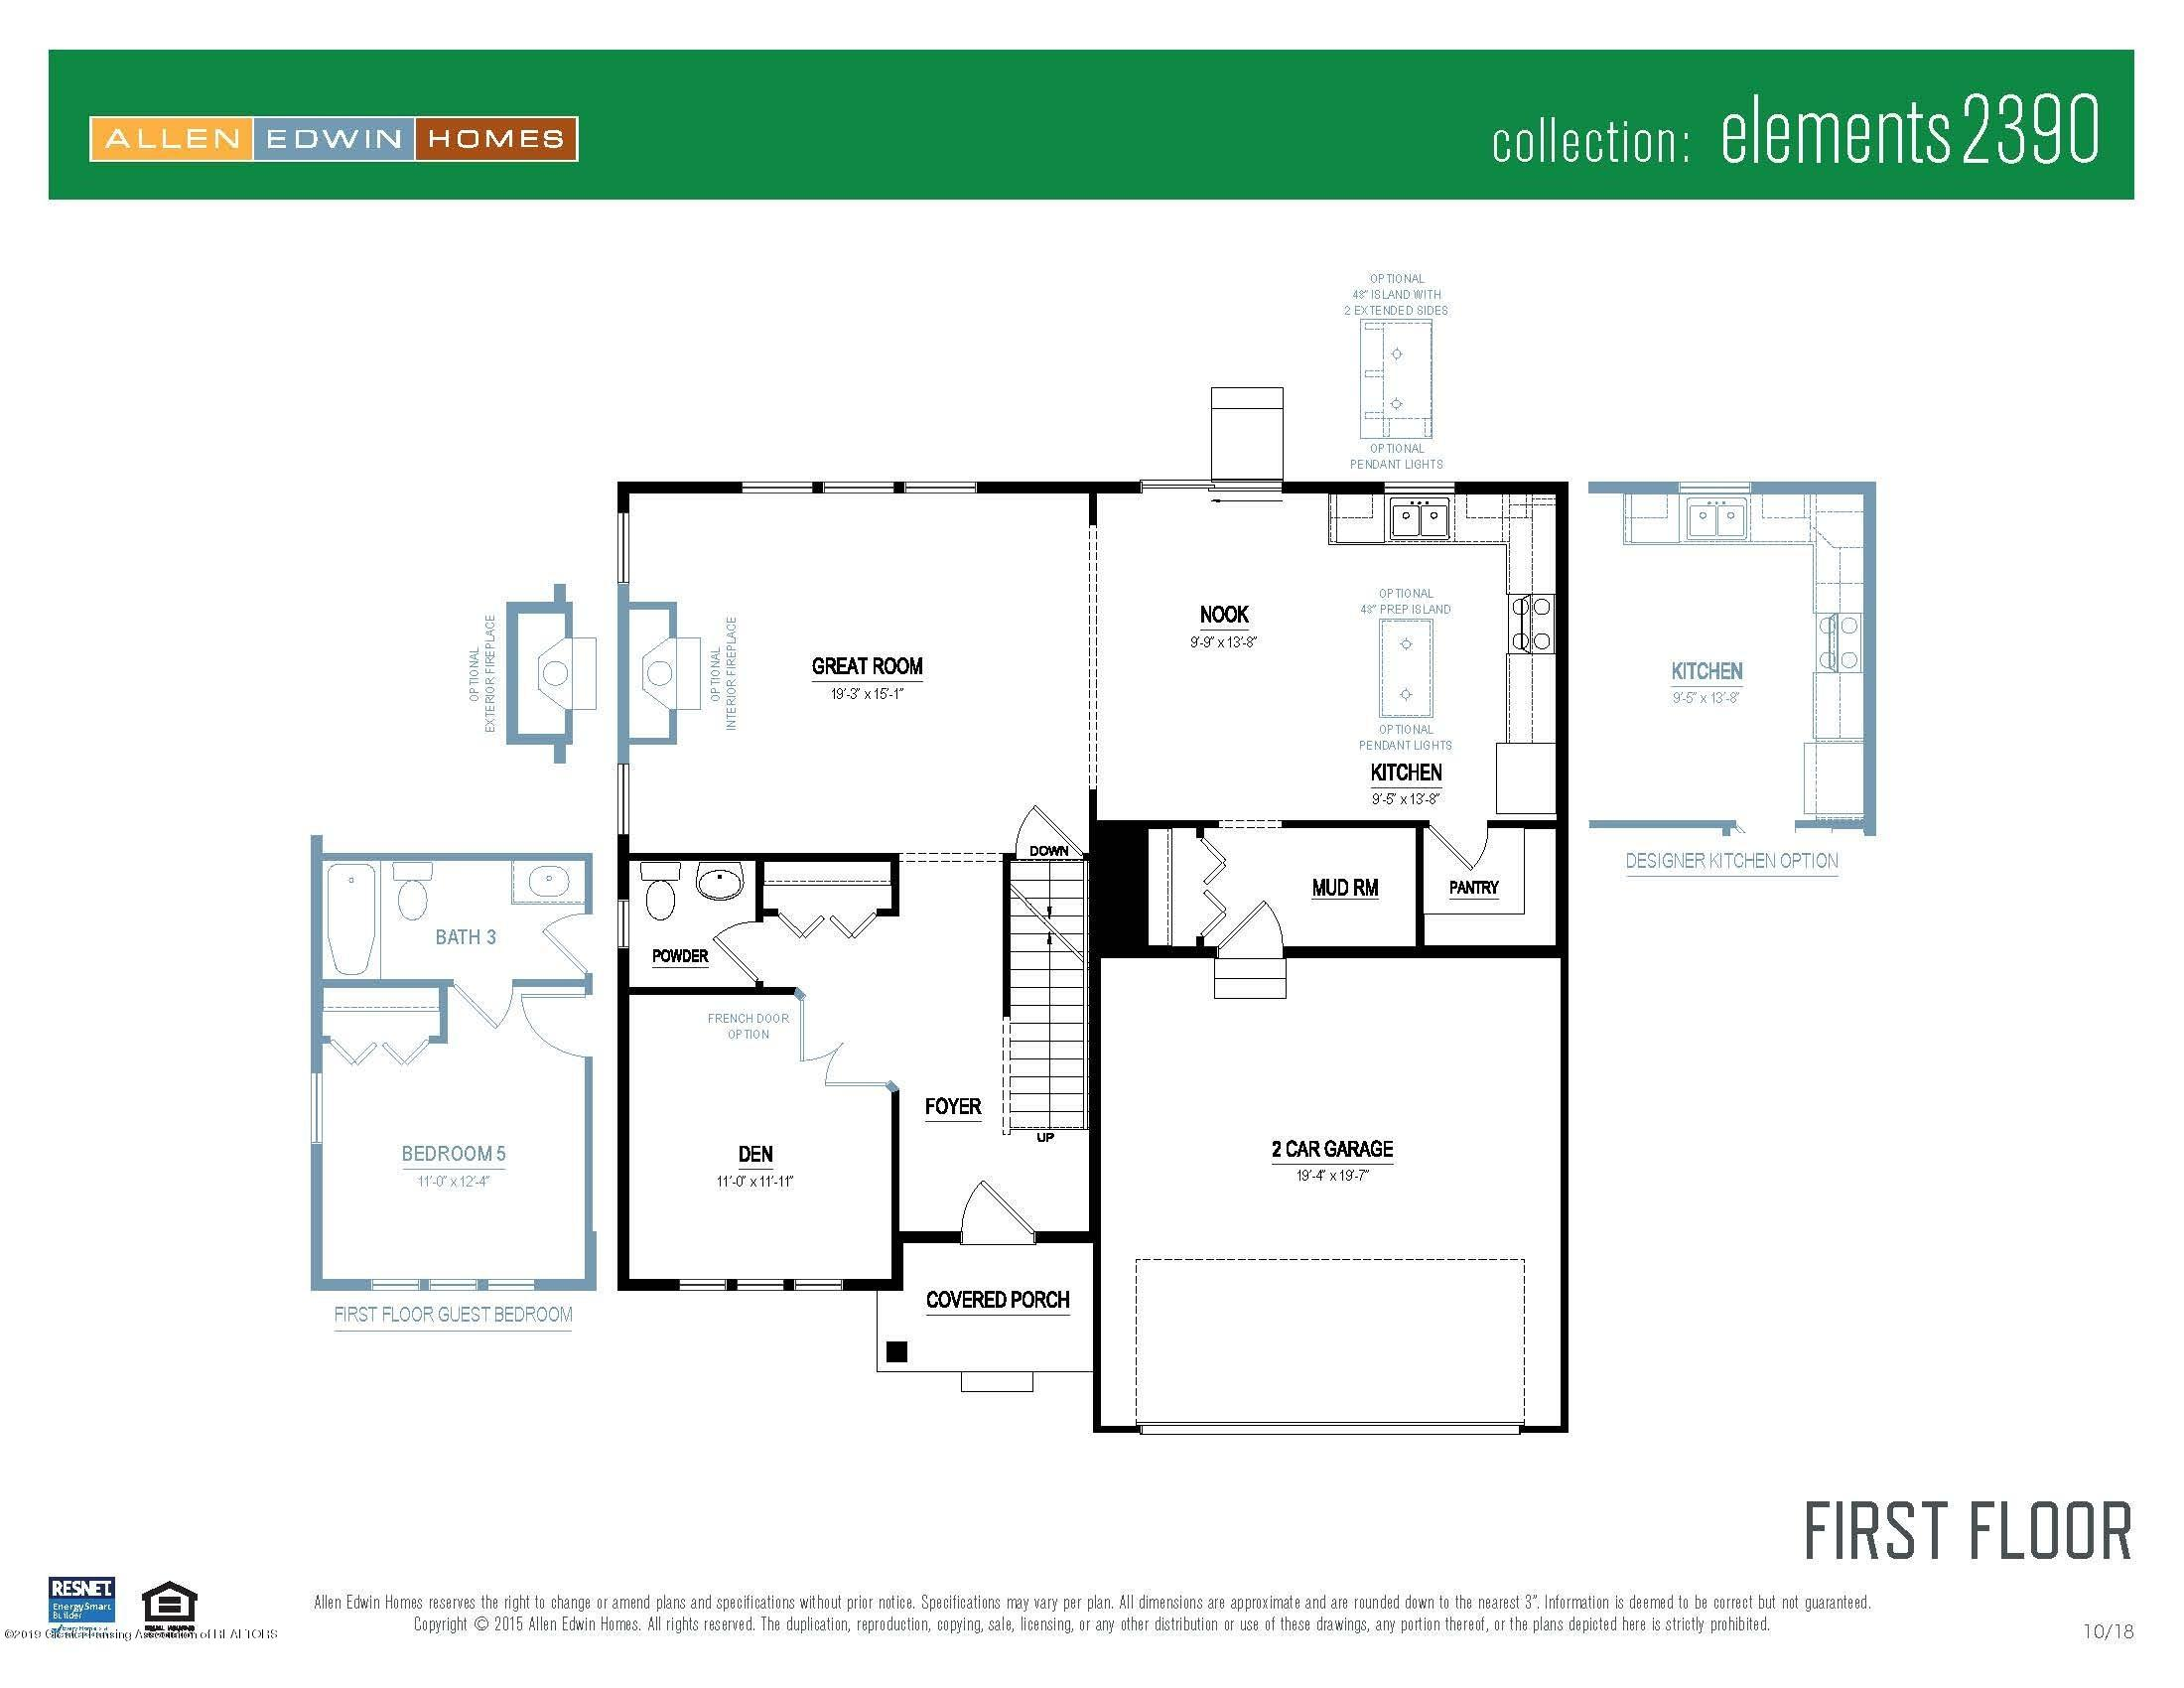 1916 Crossroads Dr - Elements 2390 V8.0a First Floor - 19